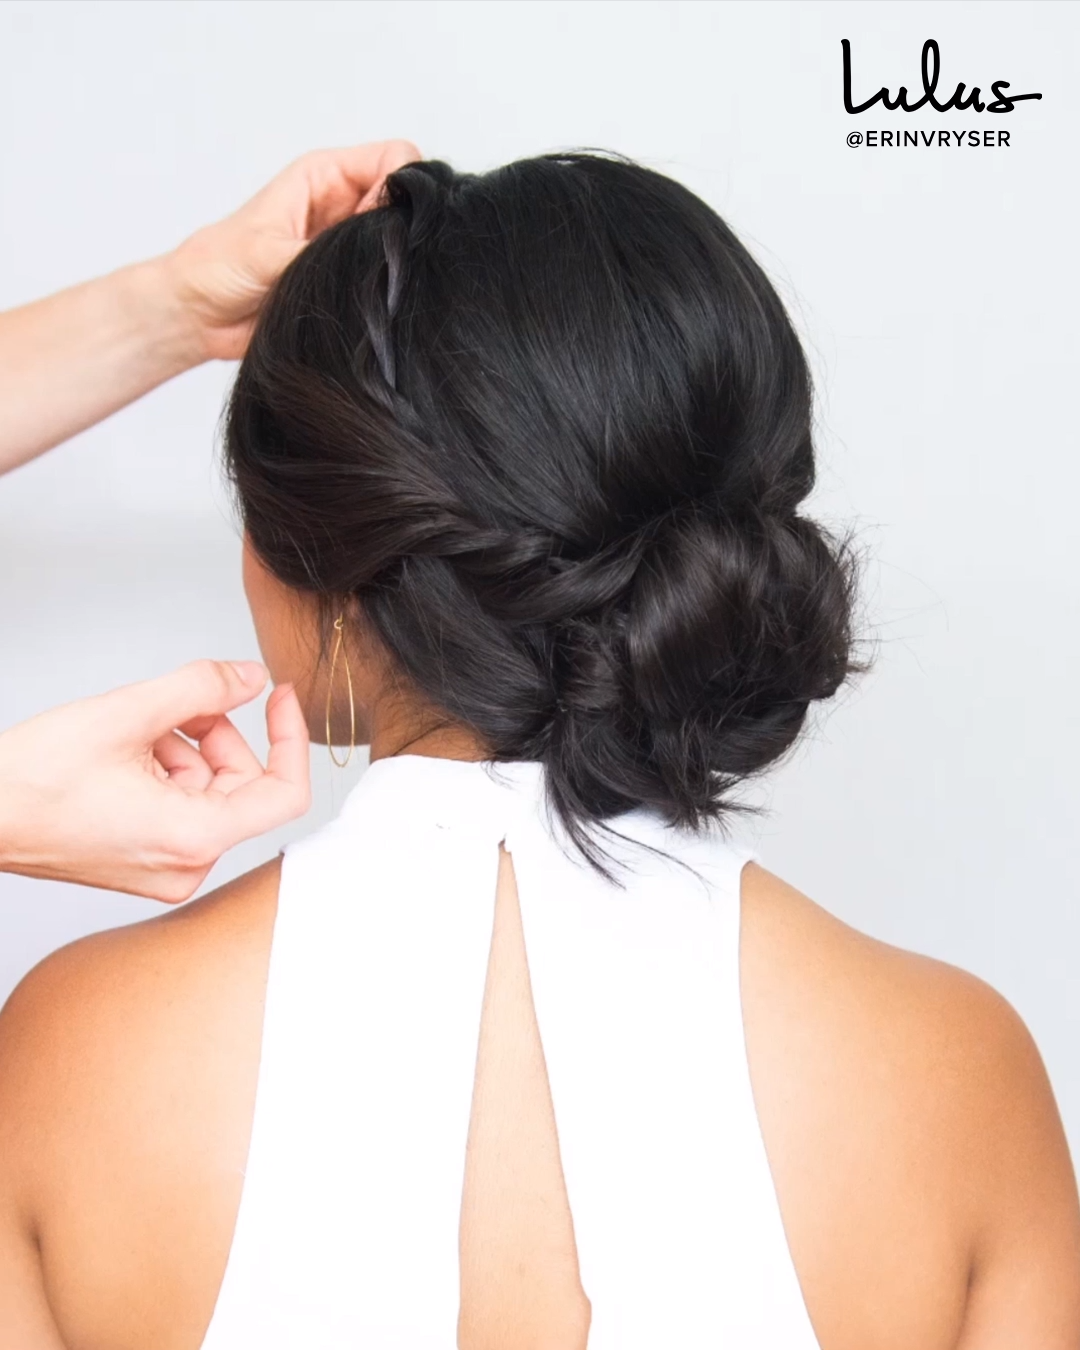 This Stunning Low Bun Hairstyle Is Perfect For Your Next Occasion Lulus Com Fashion Blog Video Video Low Bun Hairstyles Easy Bun Hairstyles Low Bun Hairstyles Tutorial